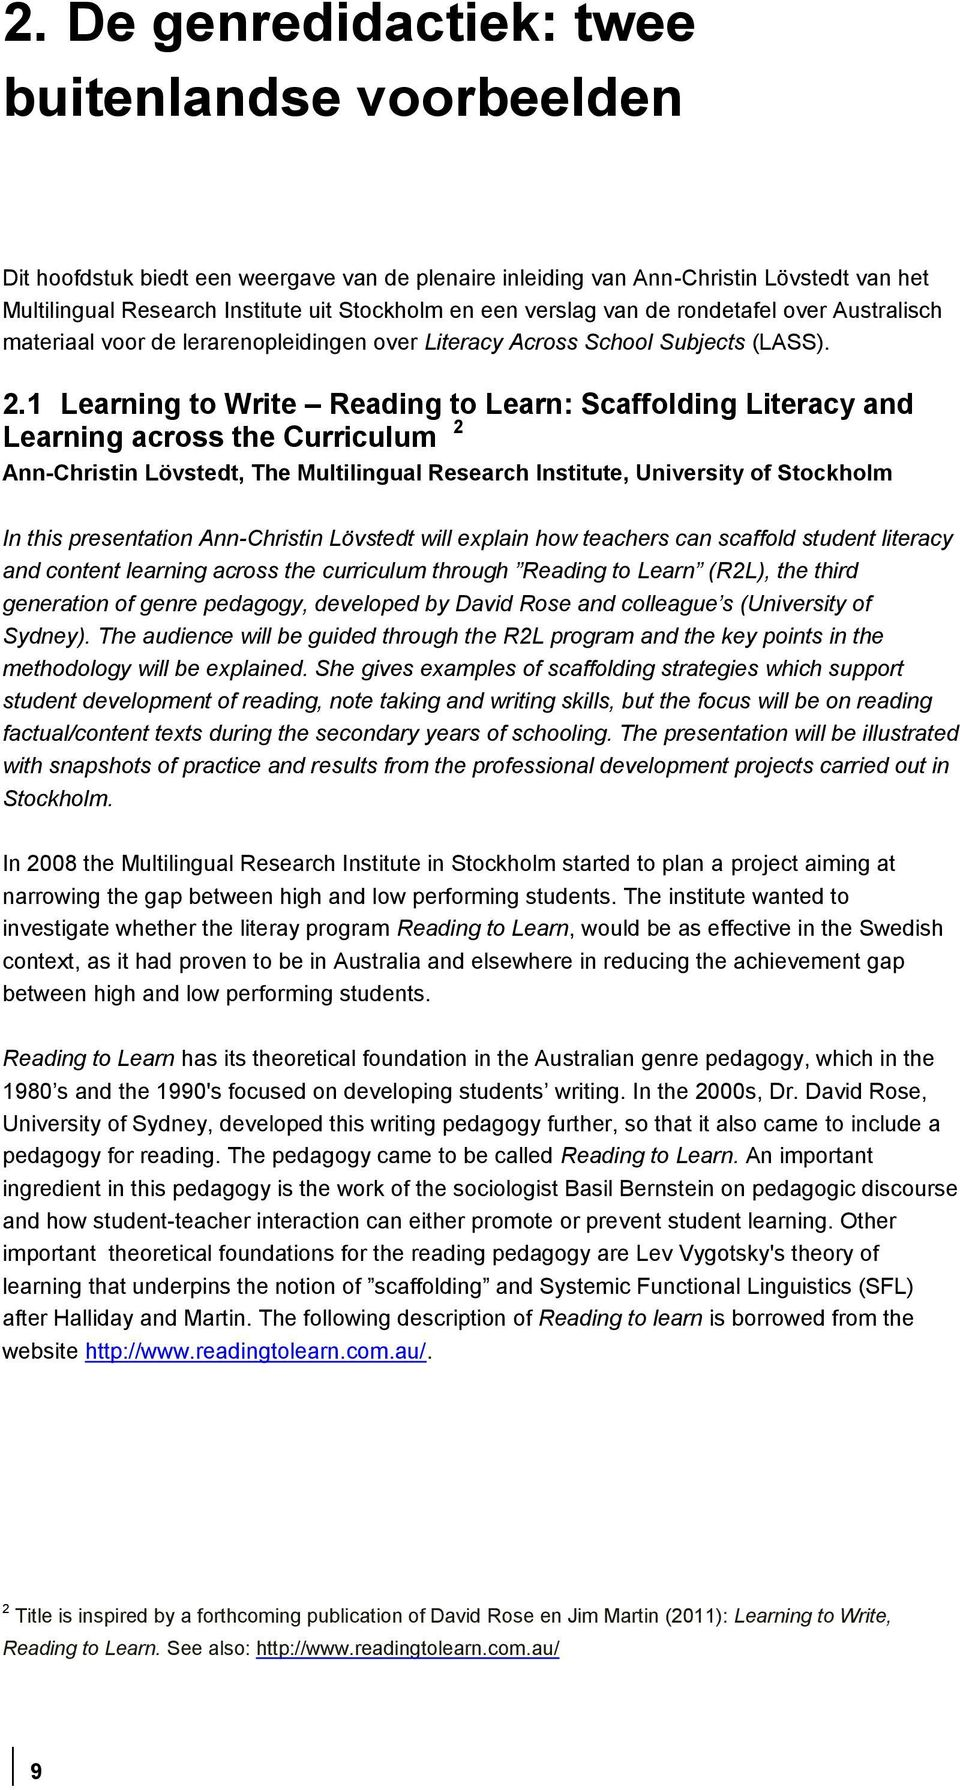 1 Learning to Write Reading to Learn: Scaffolding Literacy and Learning across the Curriculum 2 Ann-Christin Lövstedt, The Multilingual Research Institute, University of Stockholm In this